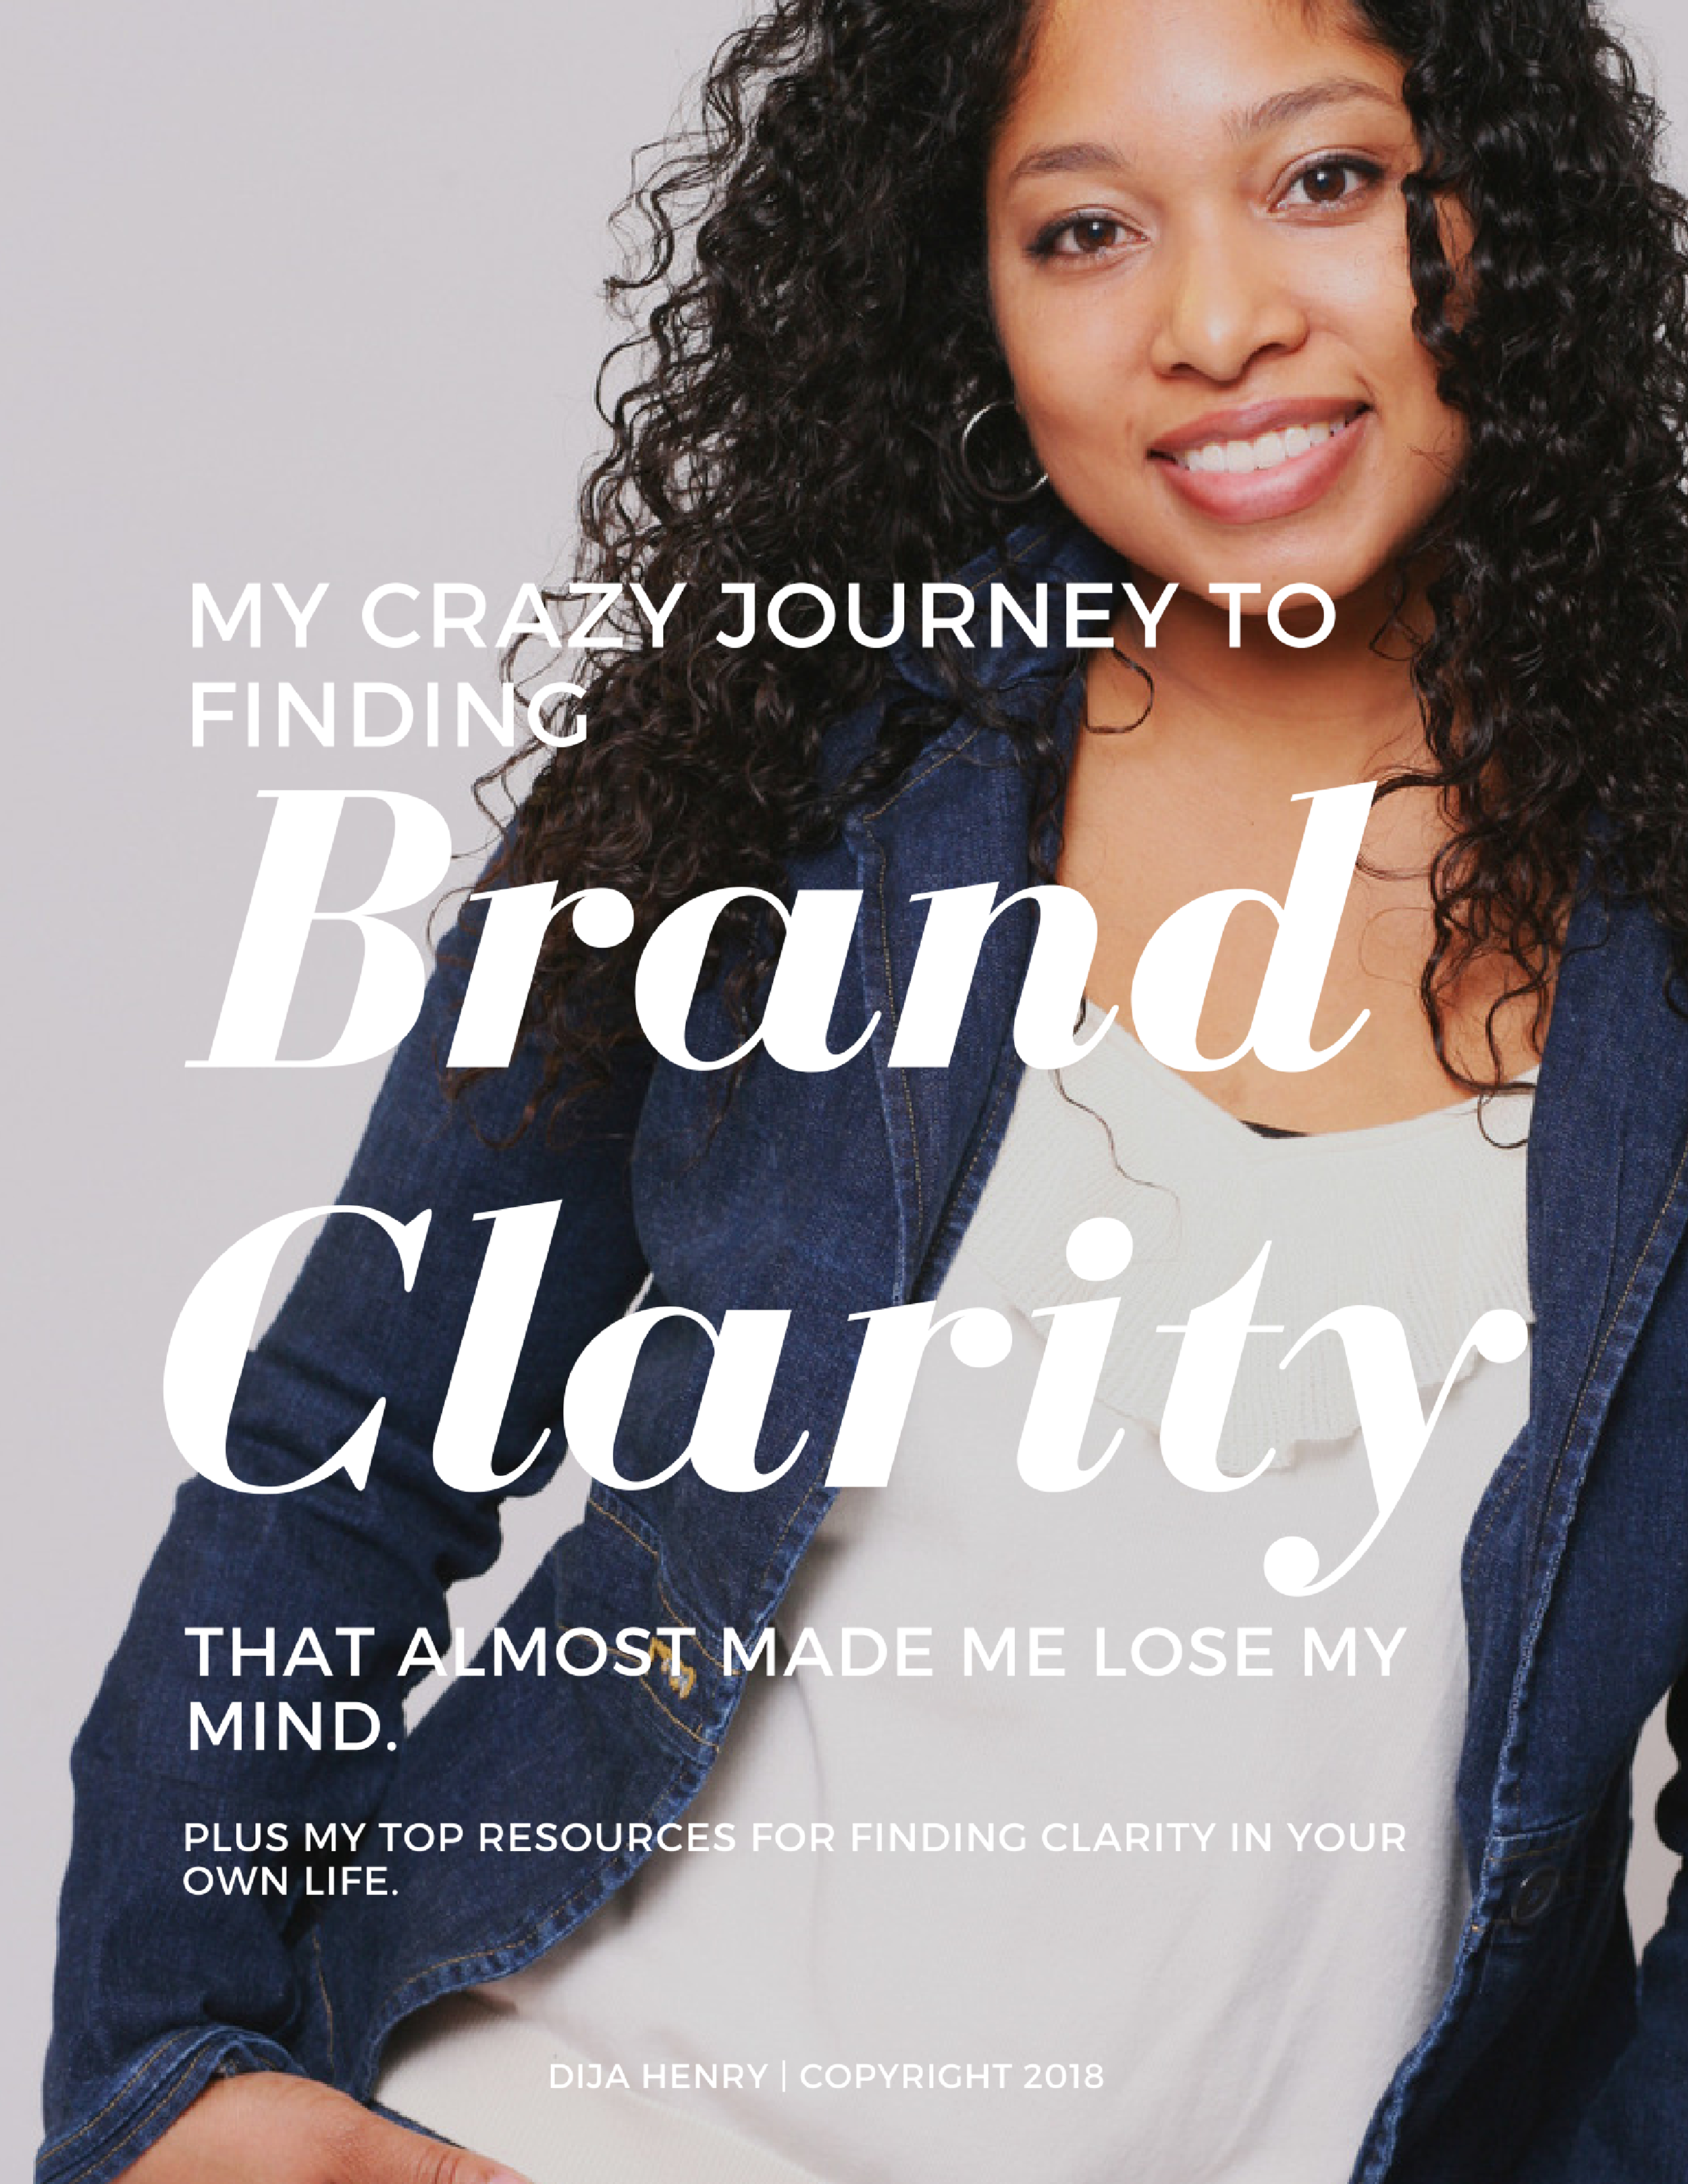 Finding clarity in your personal brand isn't always as simple as many marketers make it. In this little book I share my personal story to finding clarity along with my top resources that helped me a long the way. -